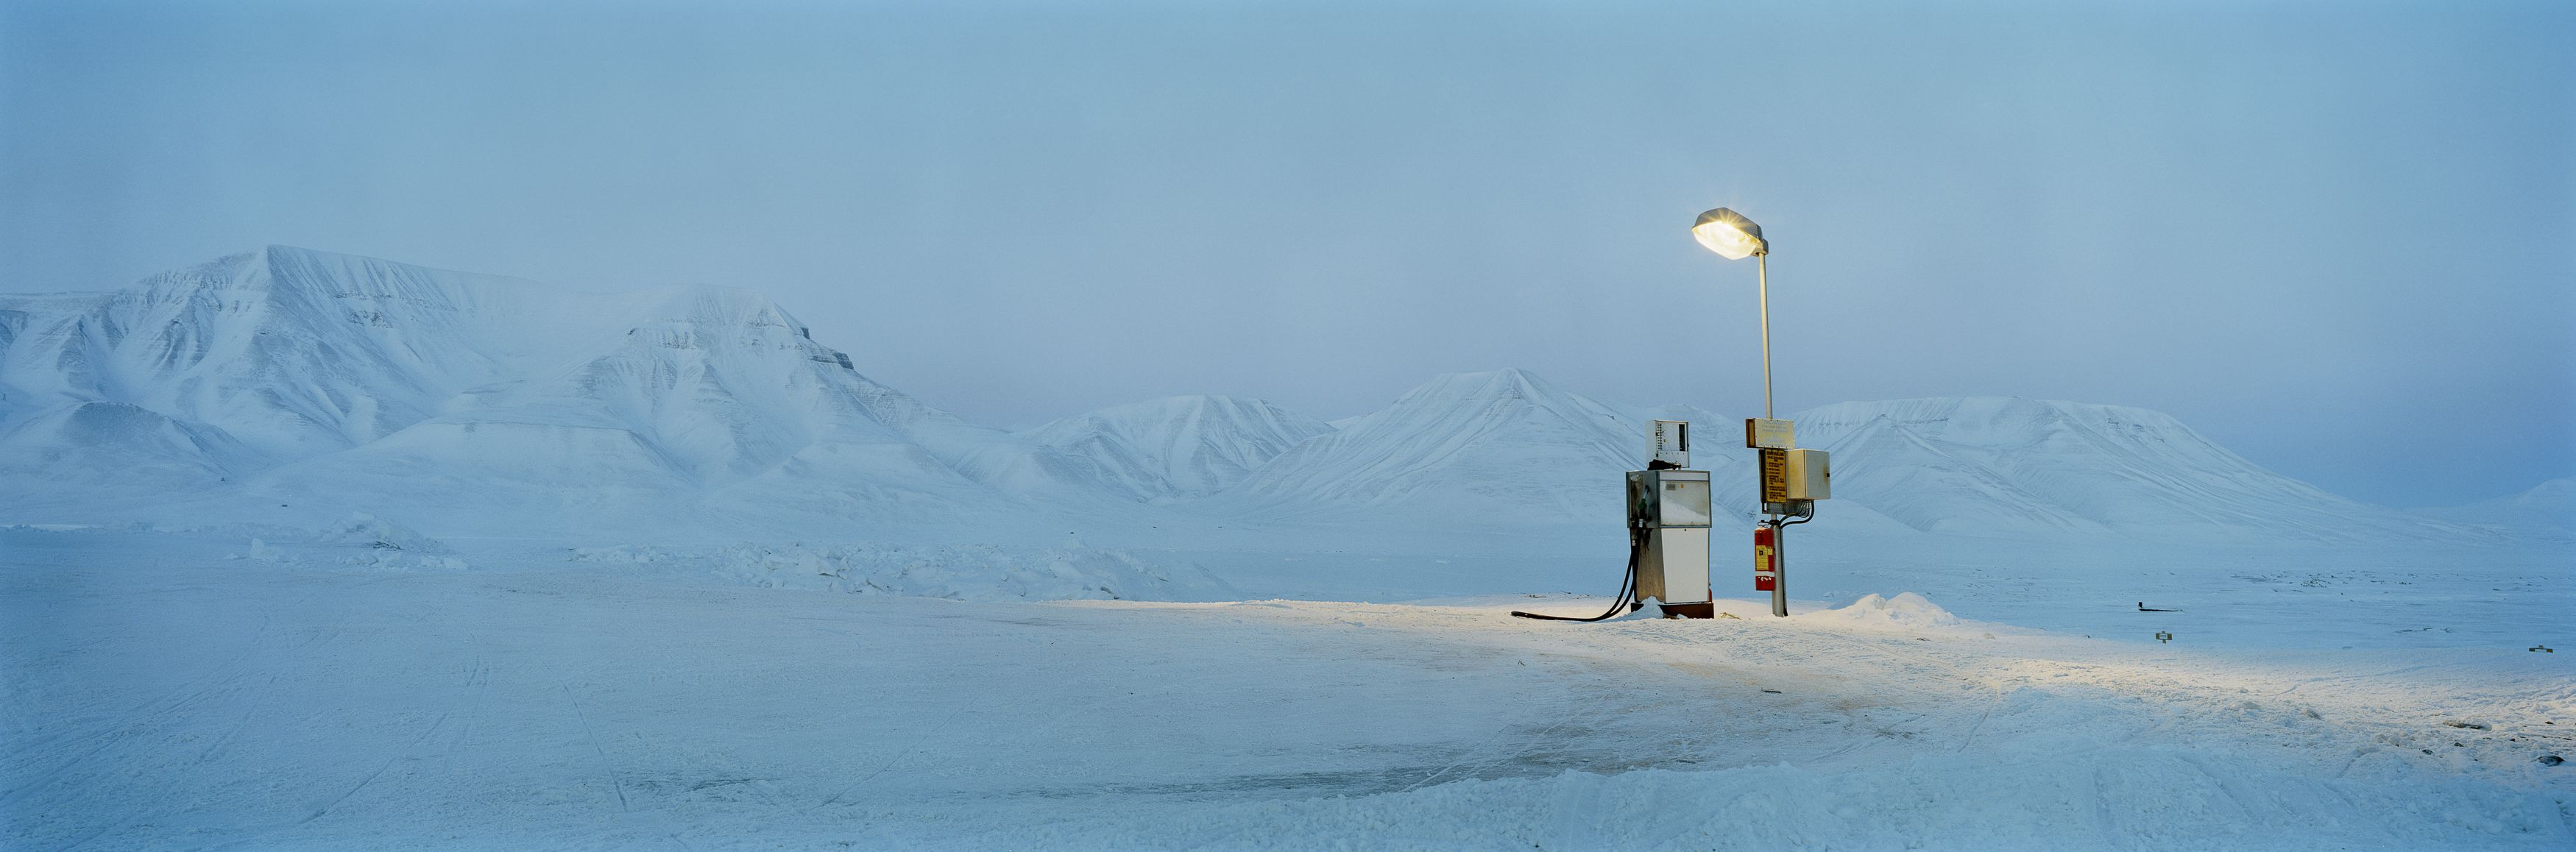 Gasoline Pump in Moonlight, Barentsburg, Spitsbergen